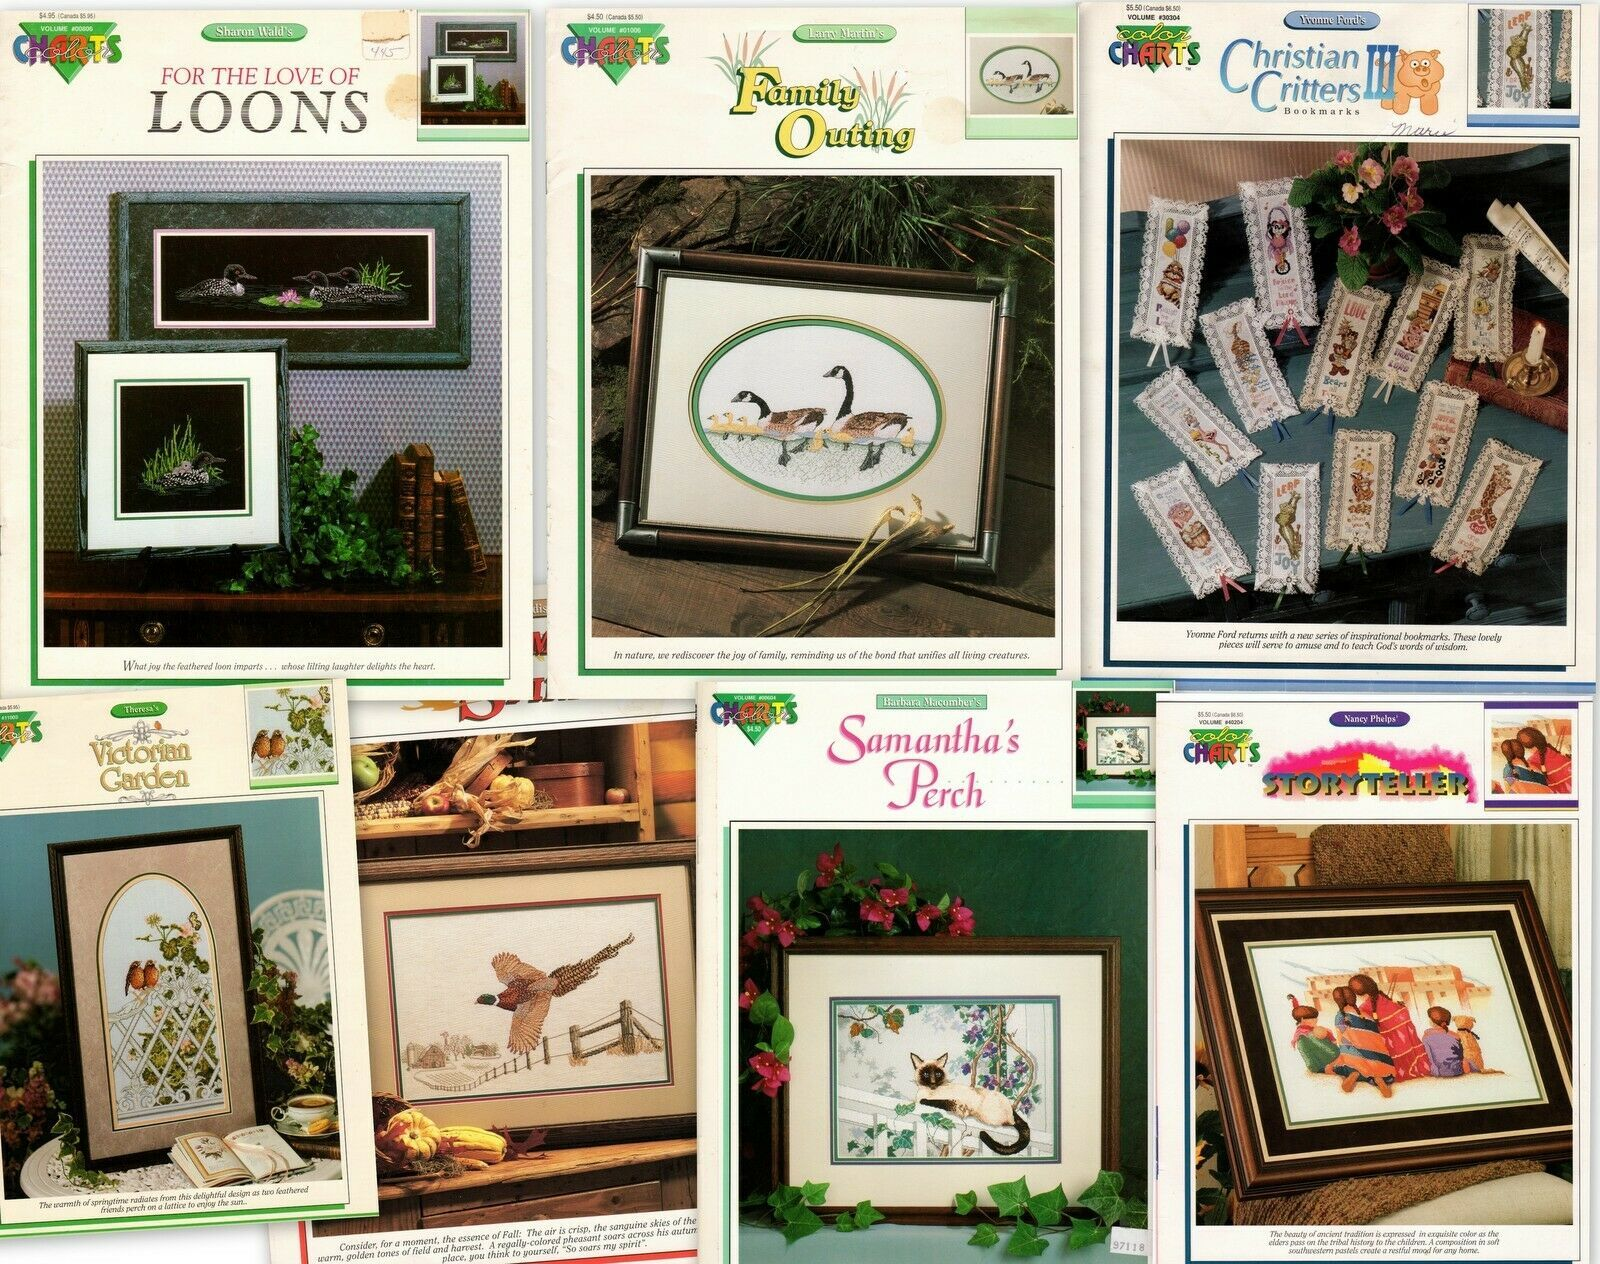 7 Cross Stitch Charts Pheasant Christian Critters Geese Loons Siamese Storytellr - $12.95